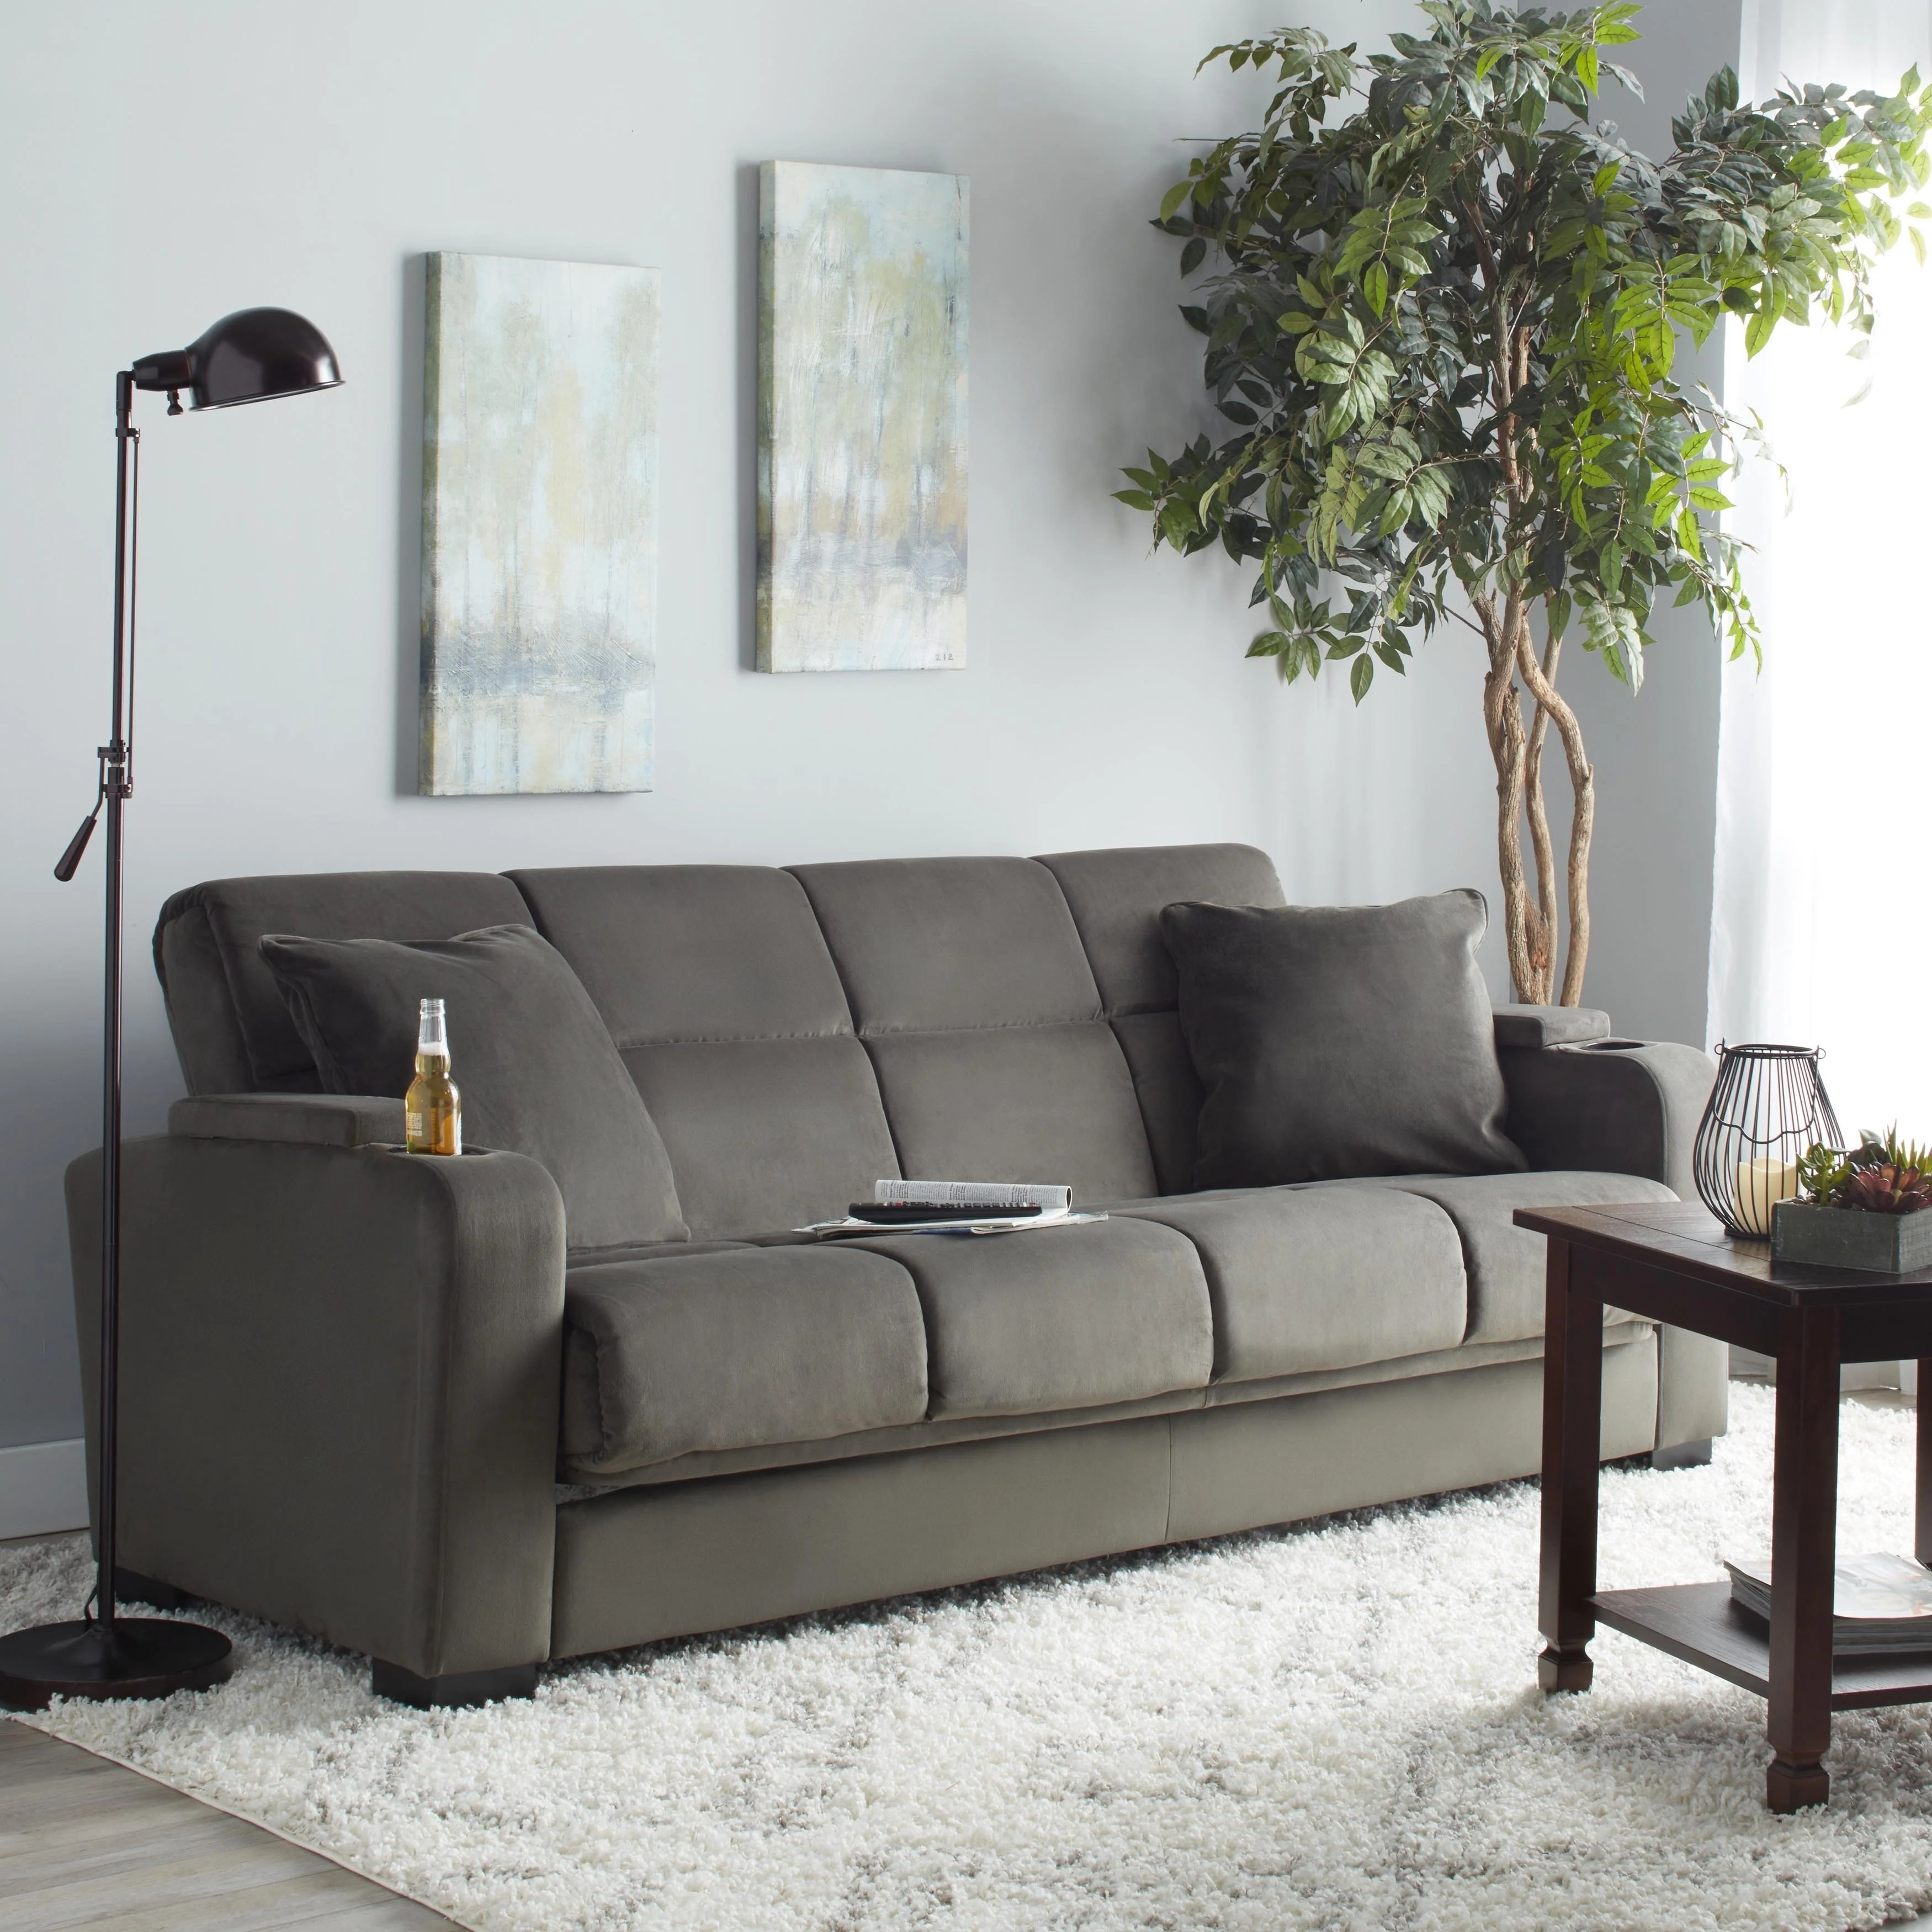 Couches Promotion Buy Sofas Couches Online At Overstock Our Best Living Room